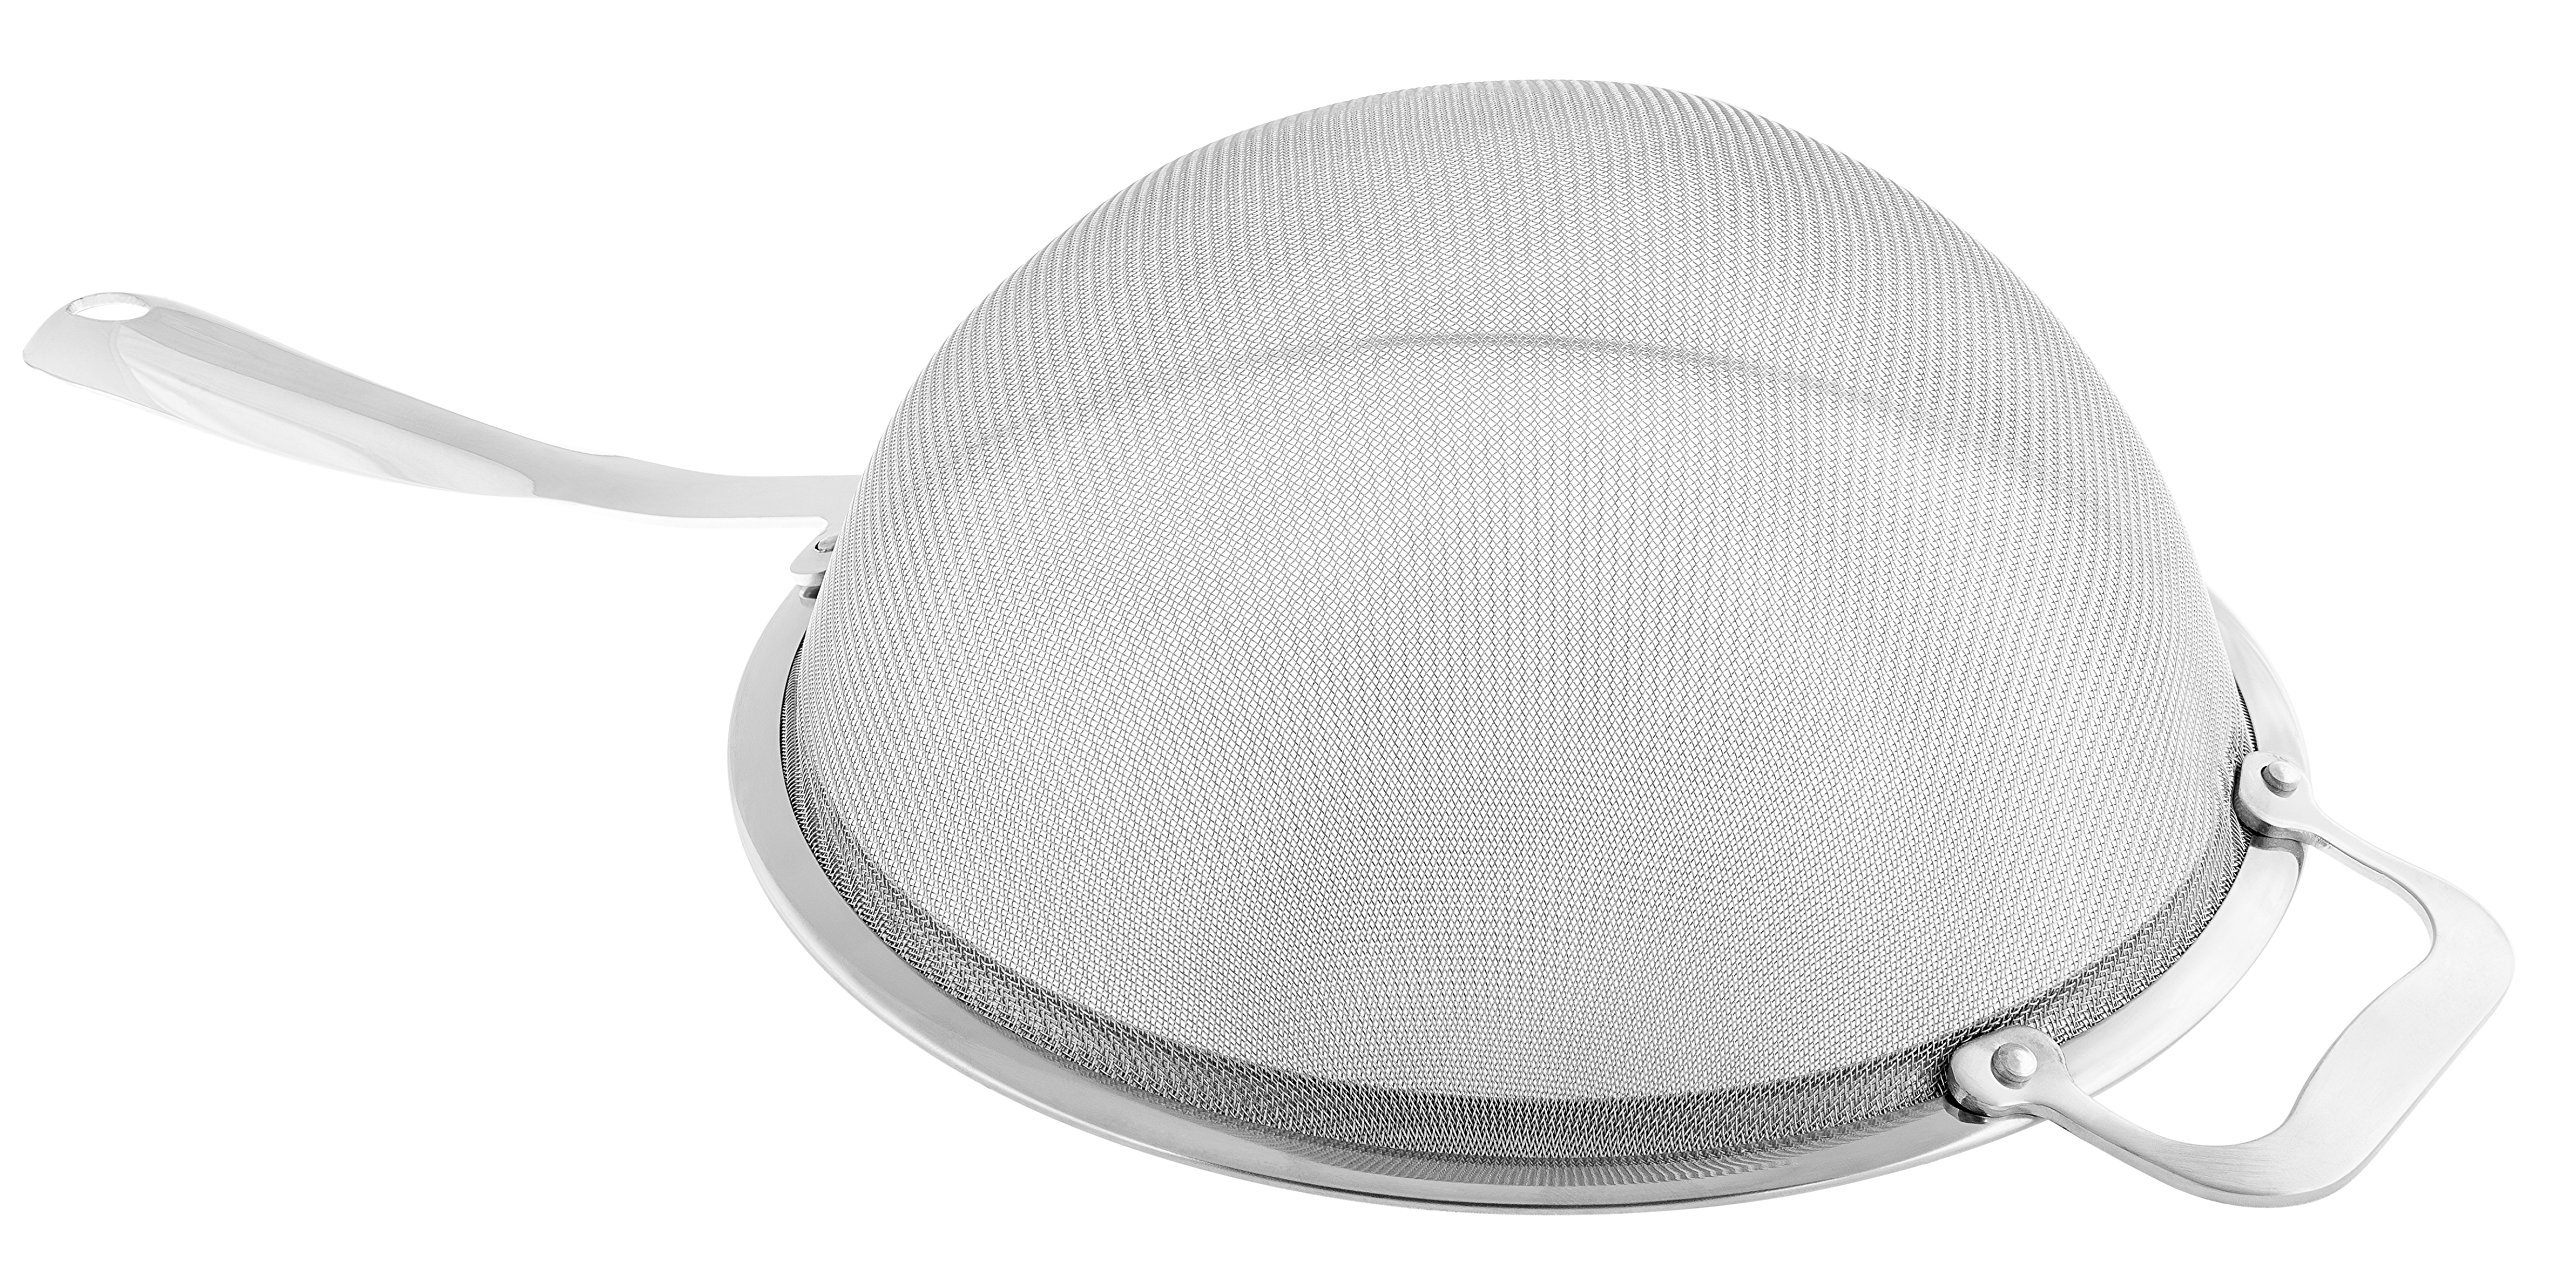 KUKPO Strainer - Fine Stainless Steel Double Mesh Strainer, 9 Inch Diameter!